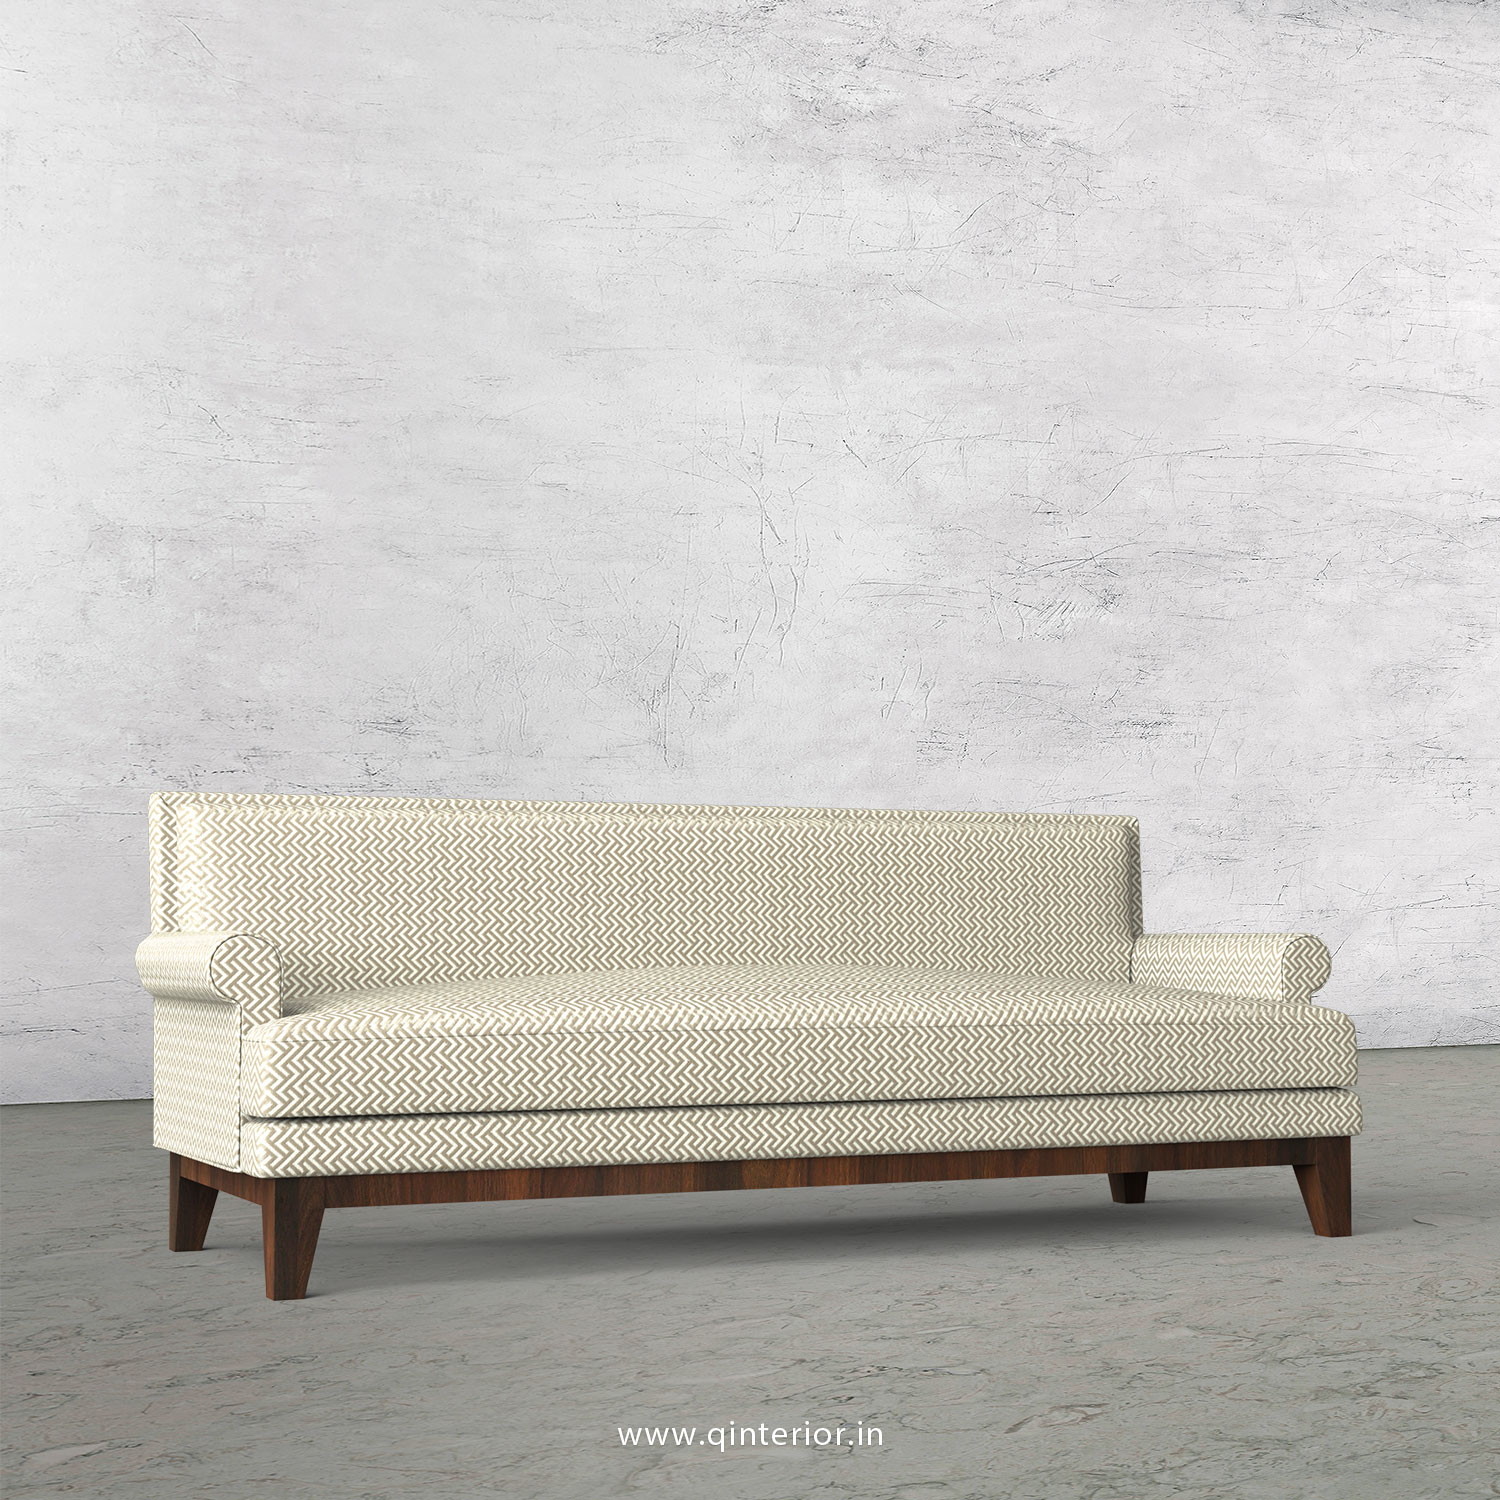 Aviana 3 Seater Sofa in Jacquard - SFA001 JQ11